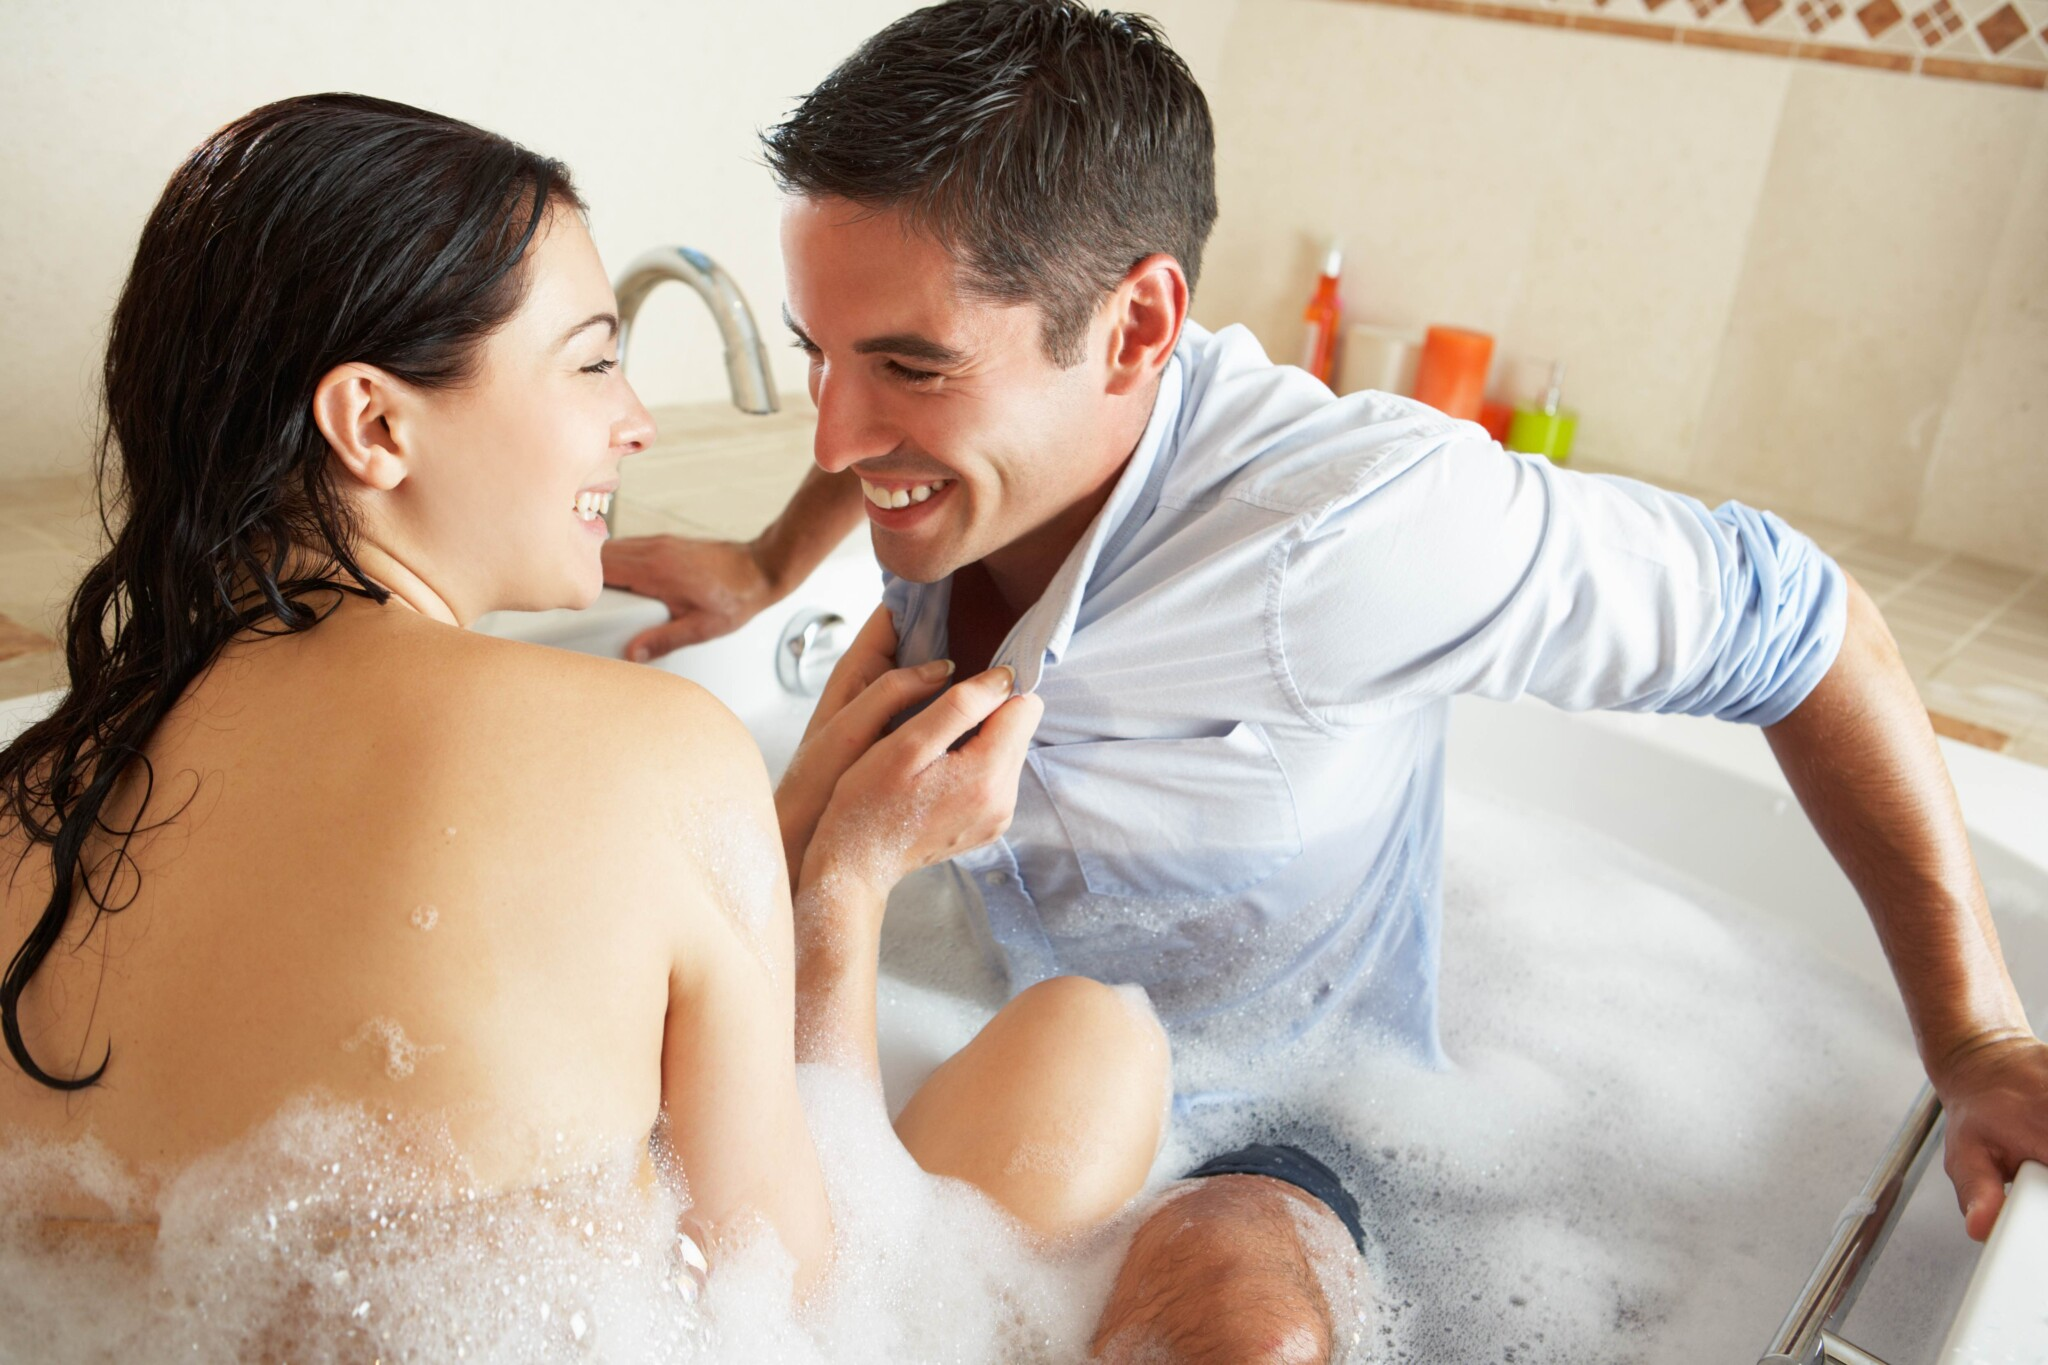 """National Bubble Bath Day: 5 Tips for a """"Sud-tastic"""" Celebration!"""